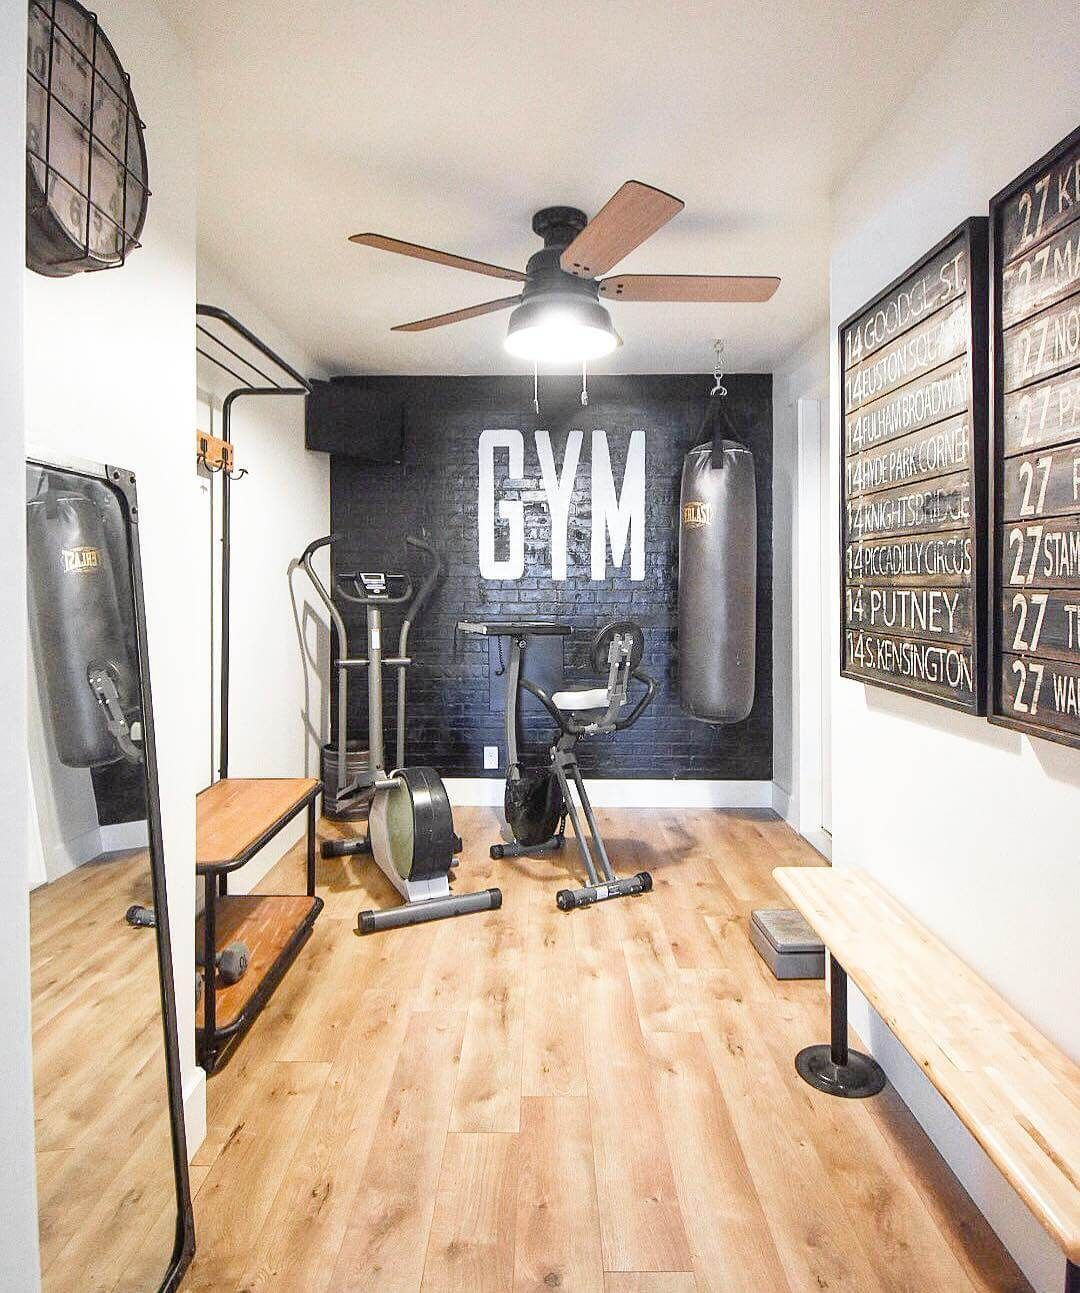 21 Awesome Home Gym Ideas To Make Your Work Out Session More Fun